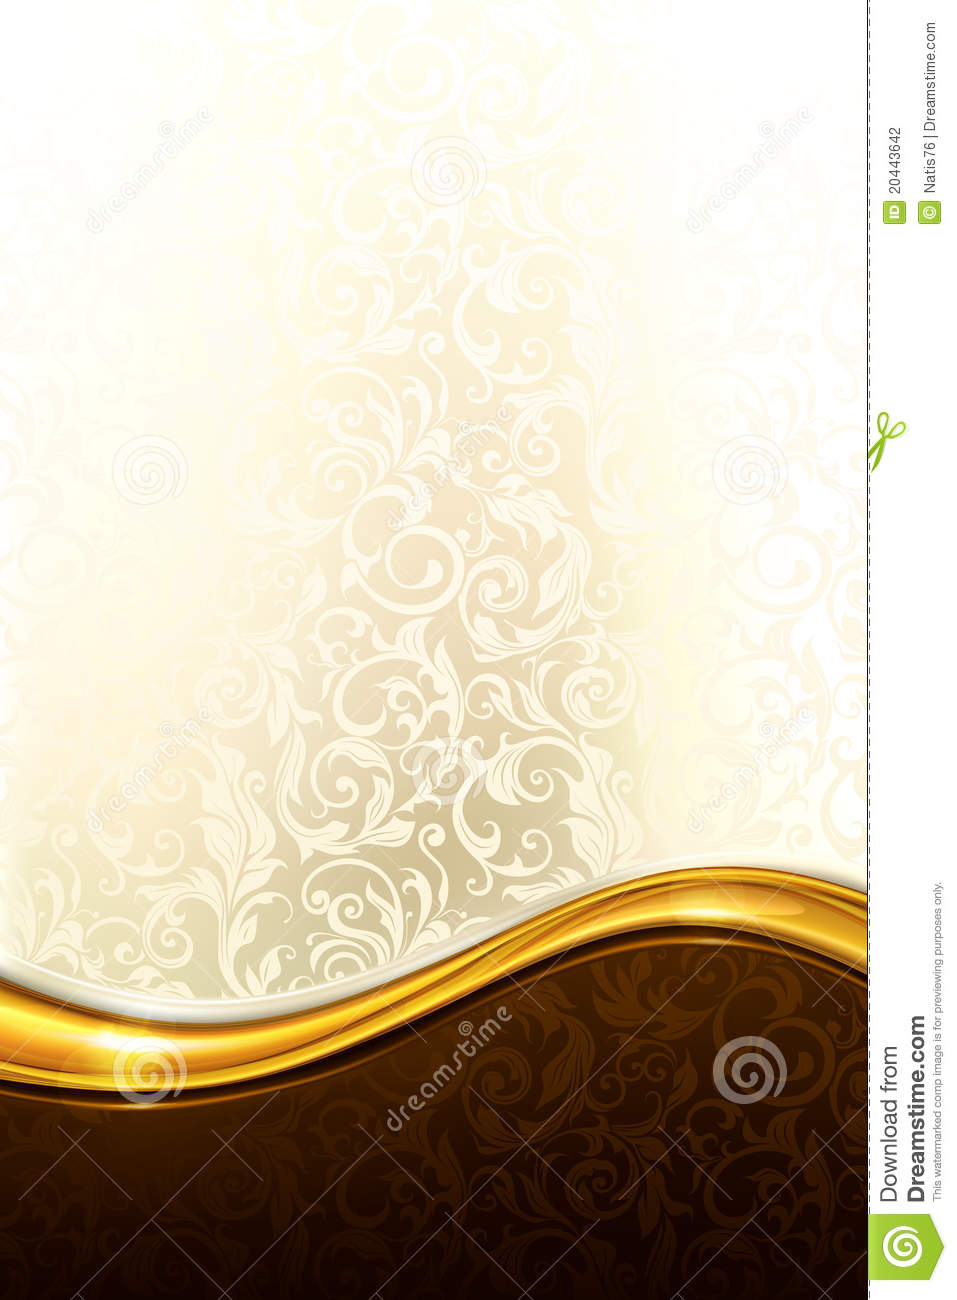 Vintage Black Wallpaper Luxury Background Stock Photography Image 20443642